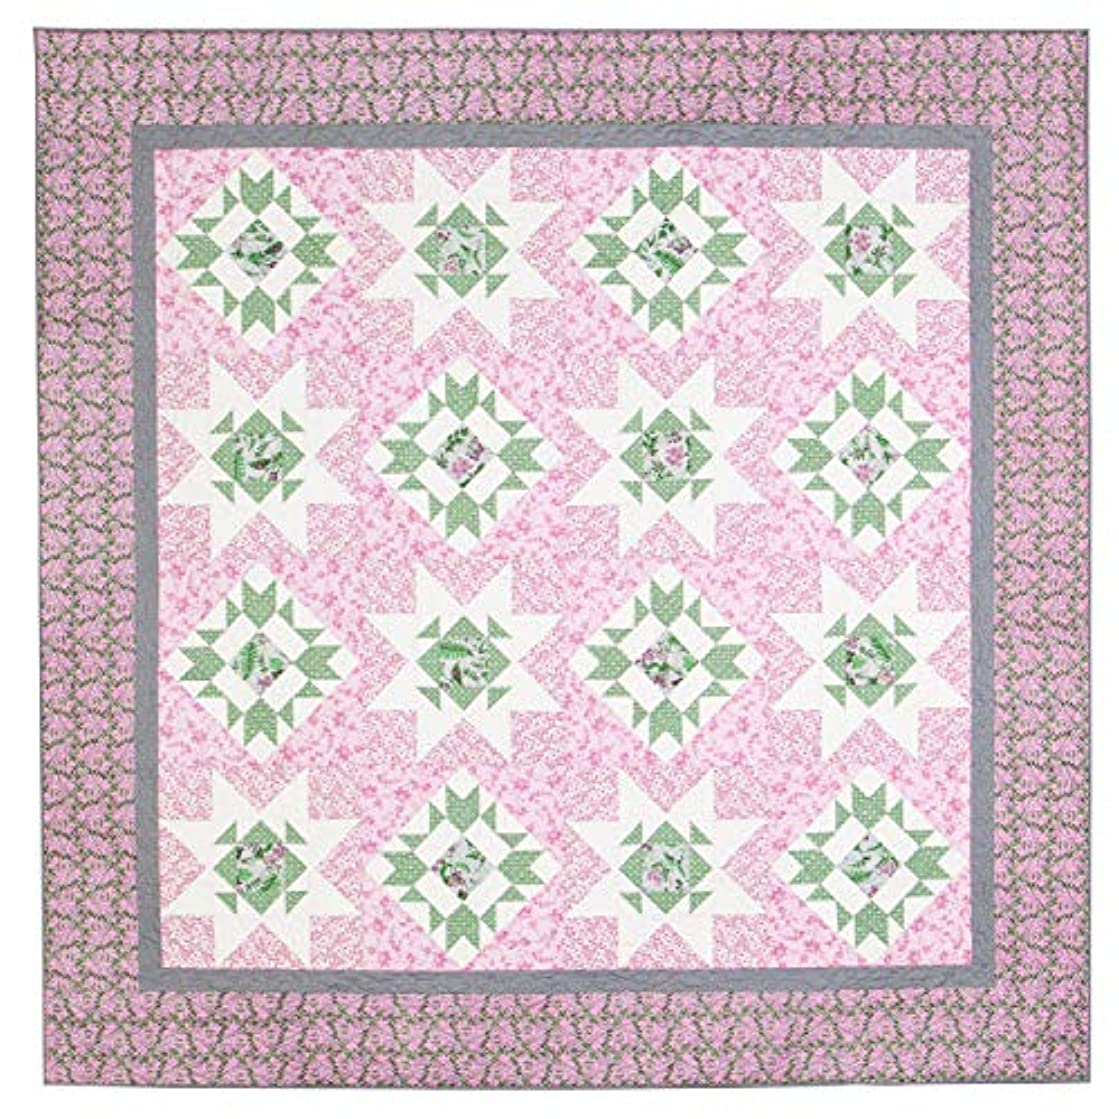 Connecting Threads Full/Queen Quilt Kit (Candlelight Queen)